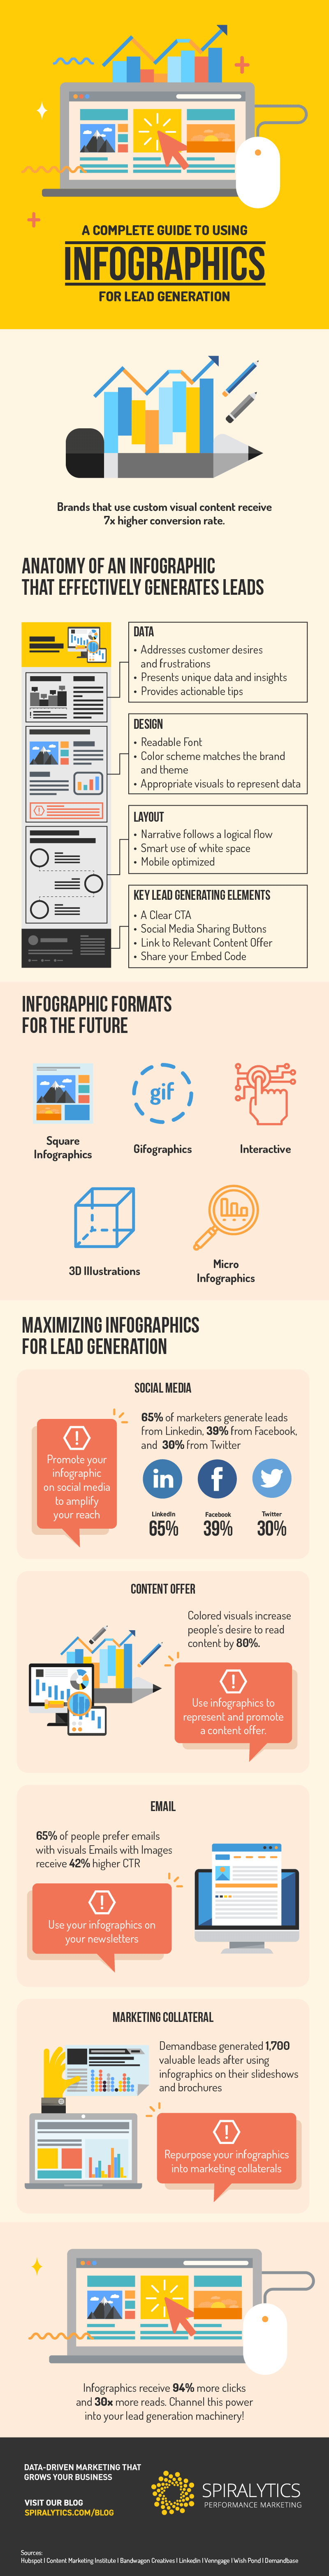 Infographic: Using Infographics For Lead Generation